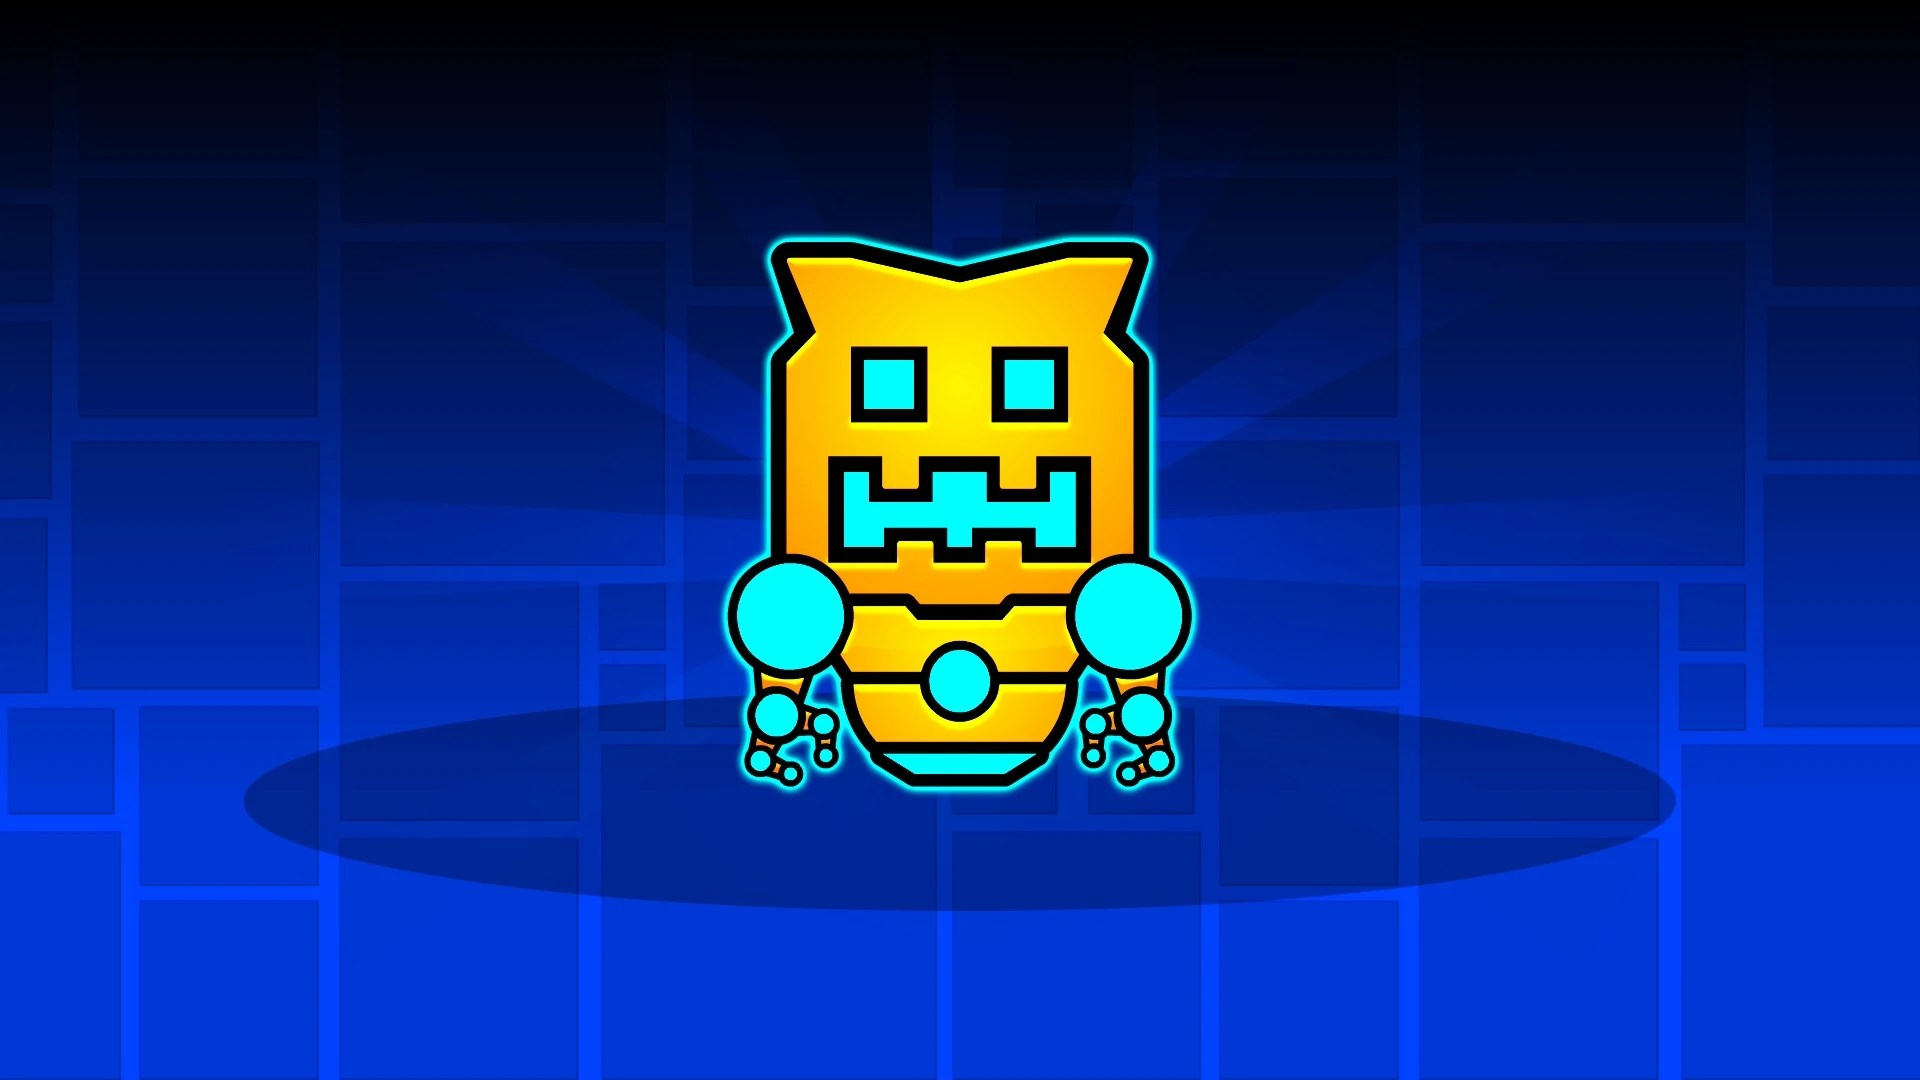 G Letter 3d Wallpaper Geometry Dash Robotop Steam Trading Cards Wiki